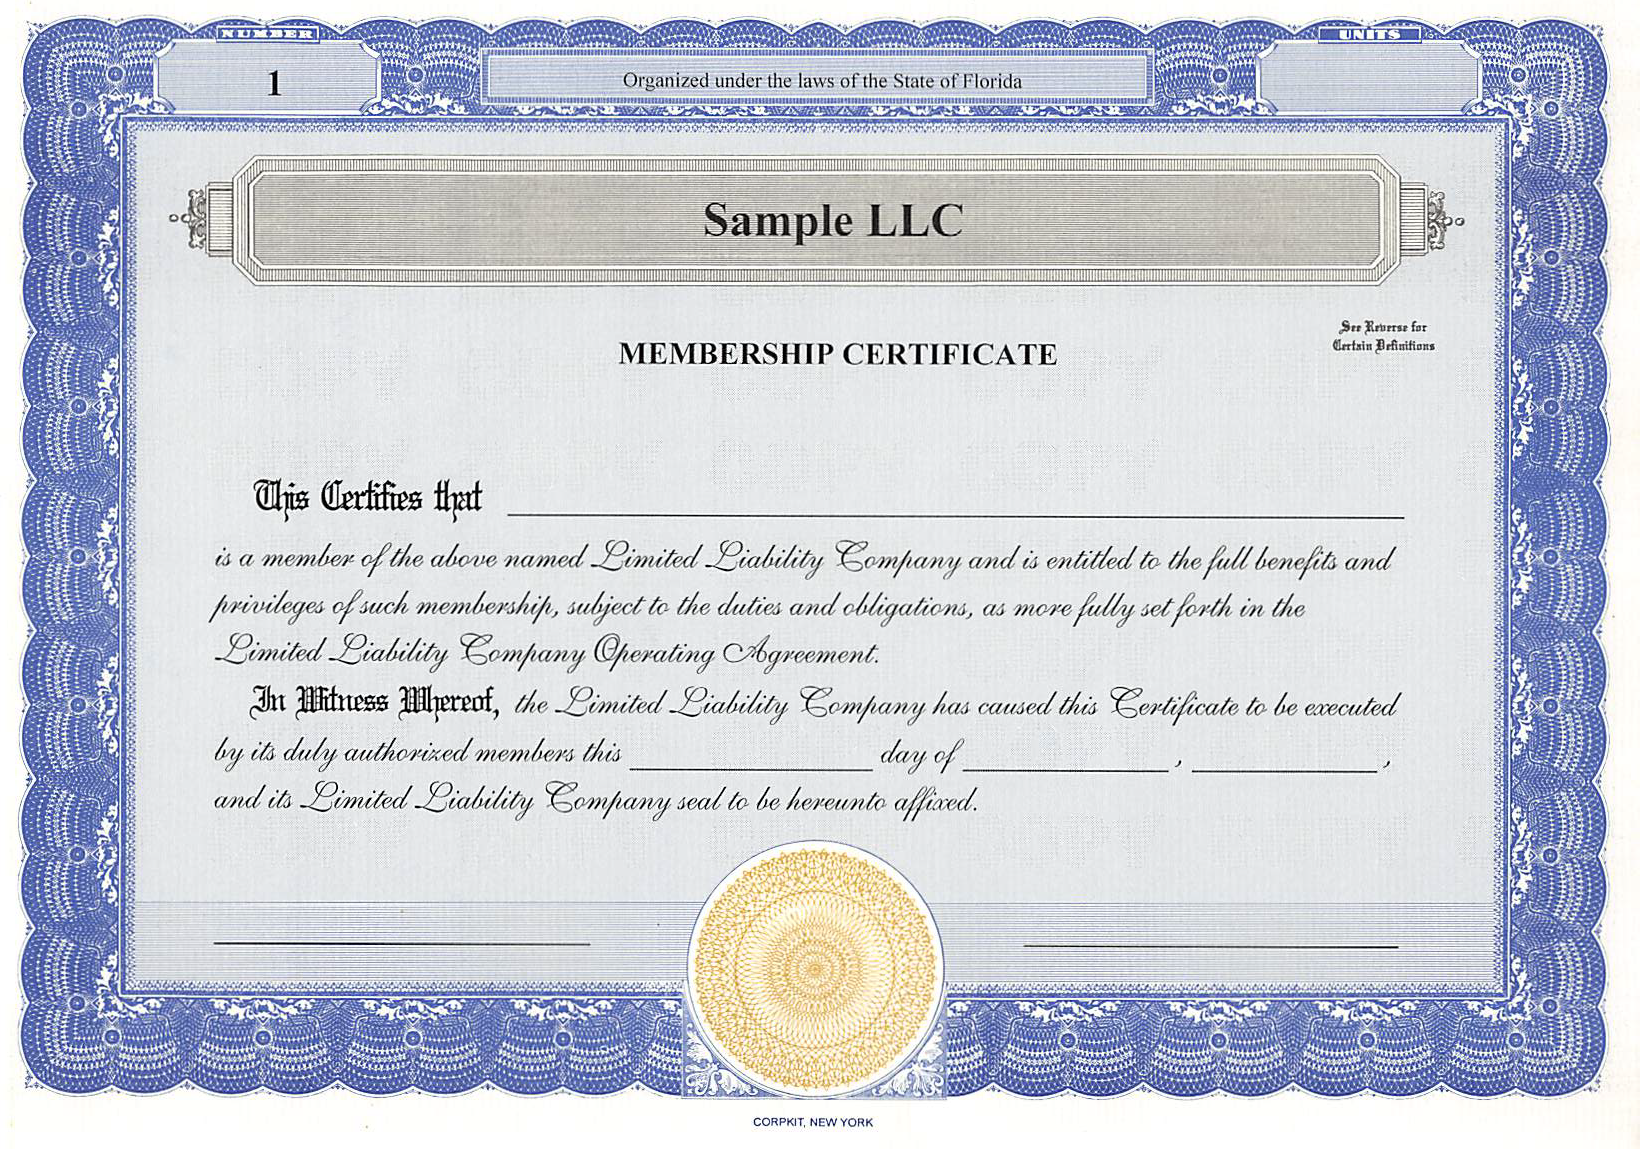 Sample LLC Certificate